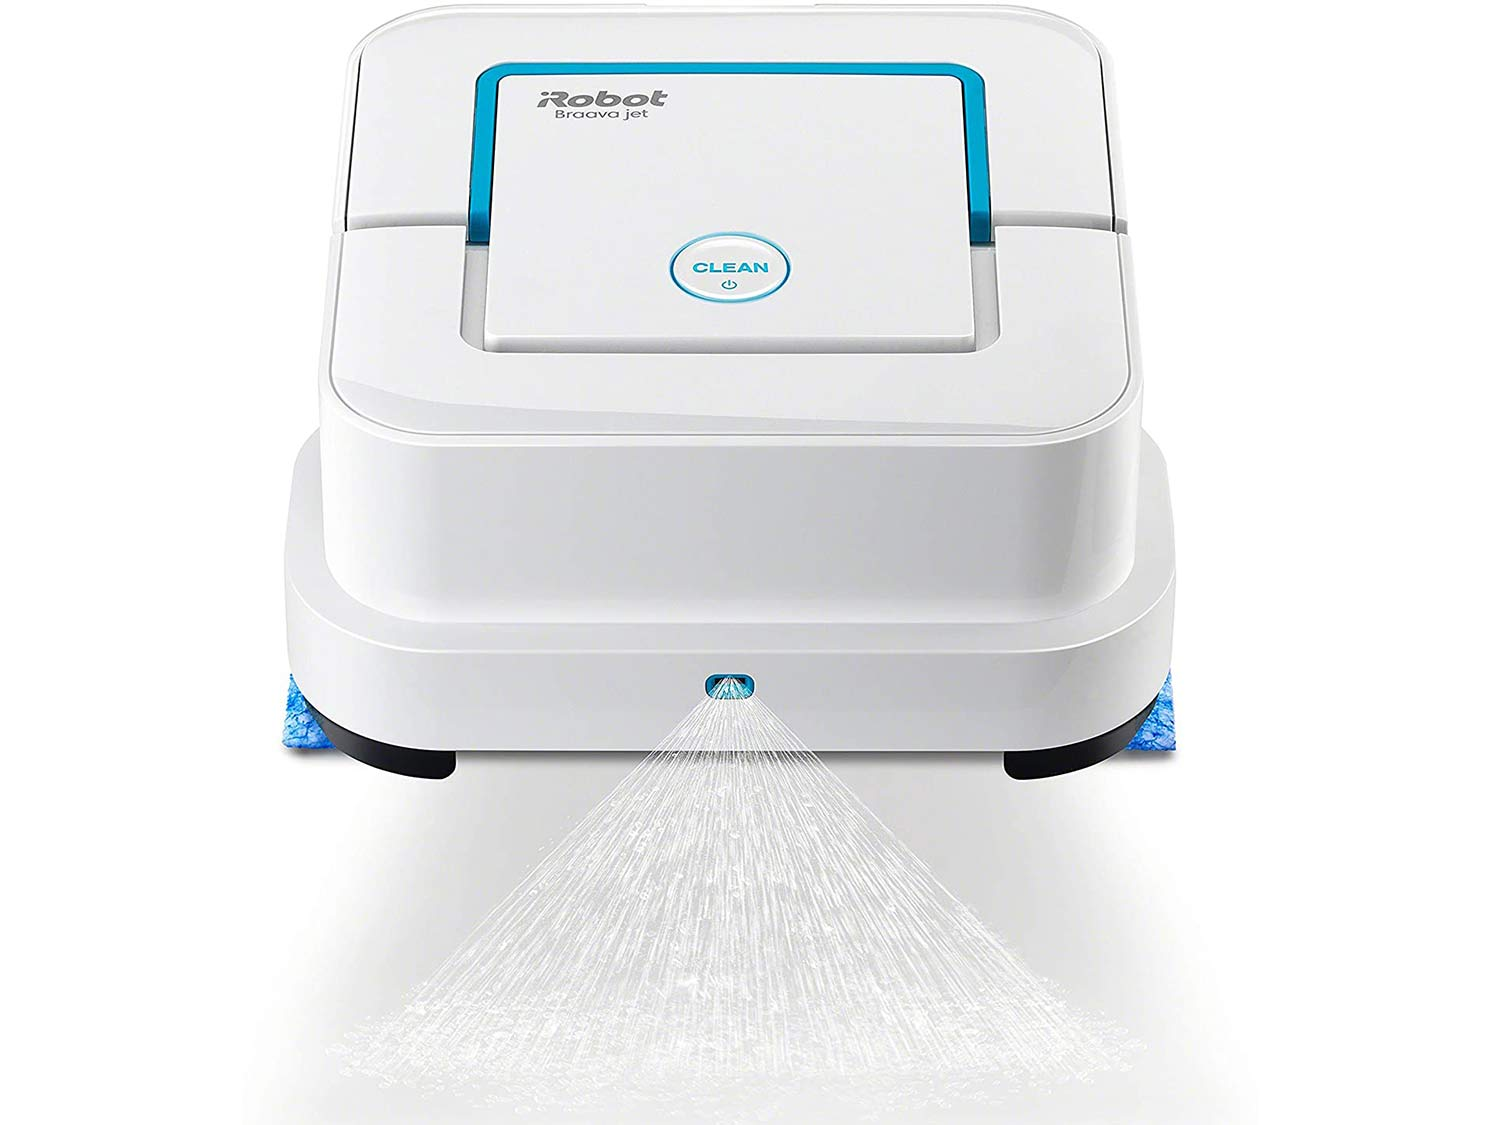 iRobot Braava Jet 240 Superior Robot Mop - App enabled, Precision Jet Spray, Vibrating Cleaning Head, Wet and Damp Mopping, Dry Sweeping Modes